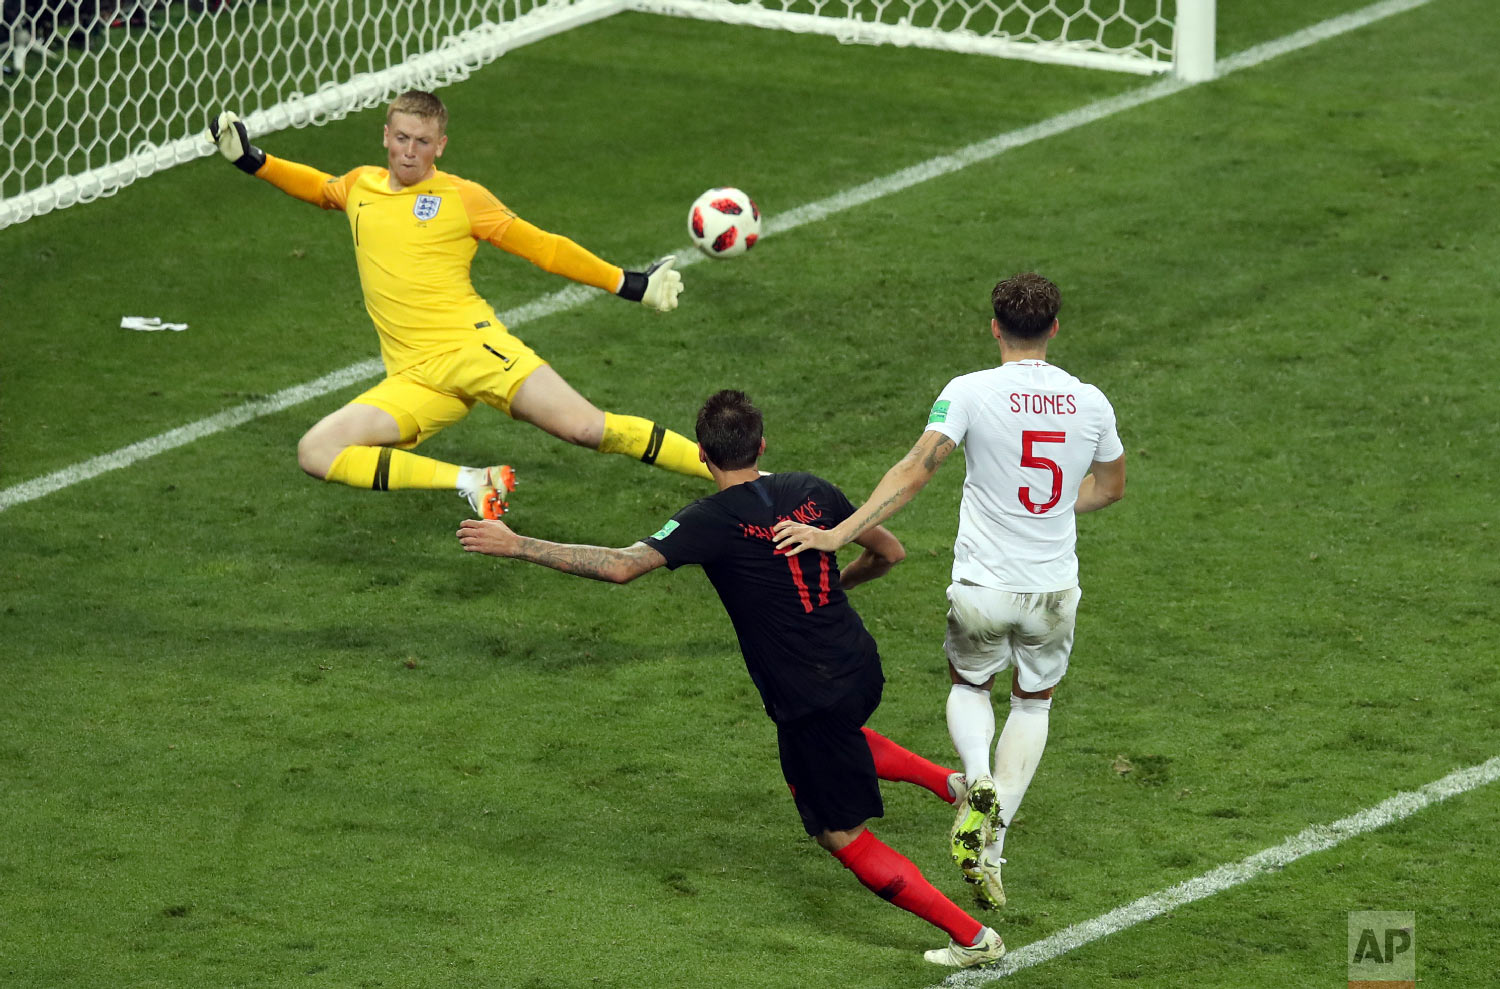 Croatia's Mario Mandzukic, 2nd right, scores his side's second goal during the semifinal match between Croatia and England at the 2018 soccer World Cup in the Luzhniki Stadium in Moscow, Russia, Wednesday, July 11, 2018. (AP Photo/Thanassis Stavrakis)